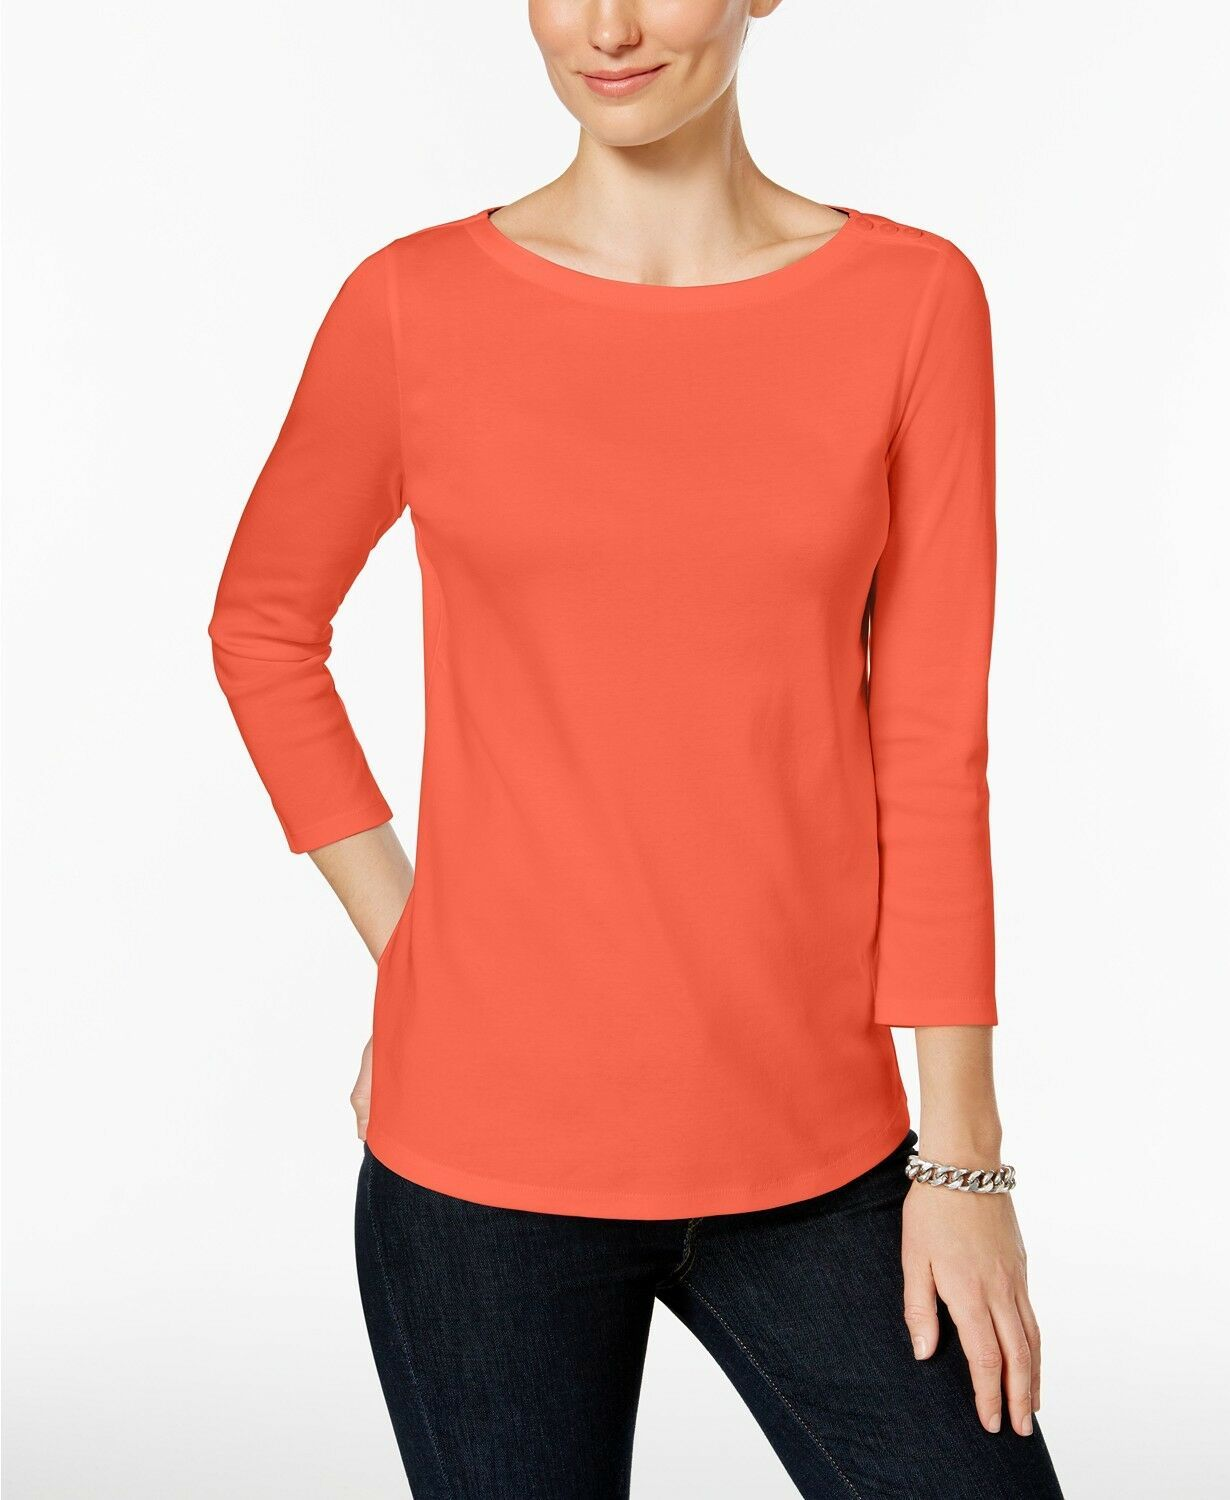 Primary image for Charter Club Women's Misty Pink Pima Cotton Button-Shoulder Top Size Petite